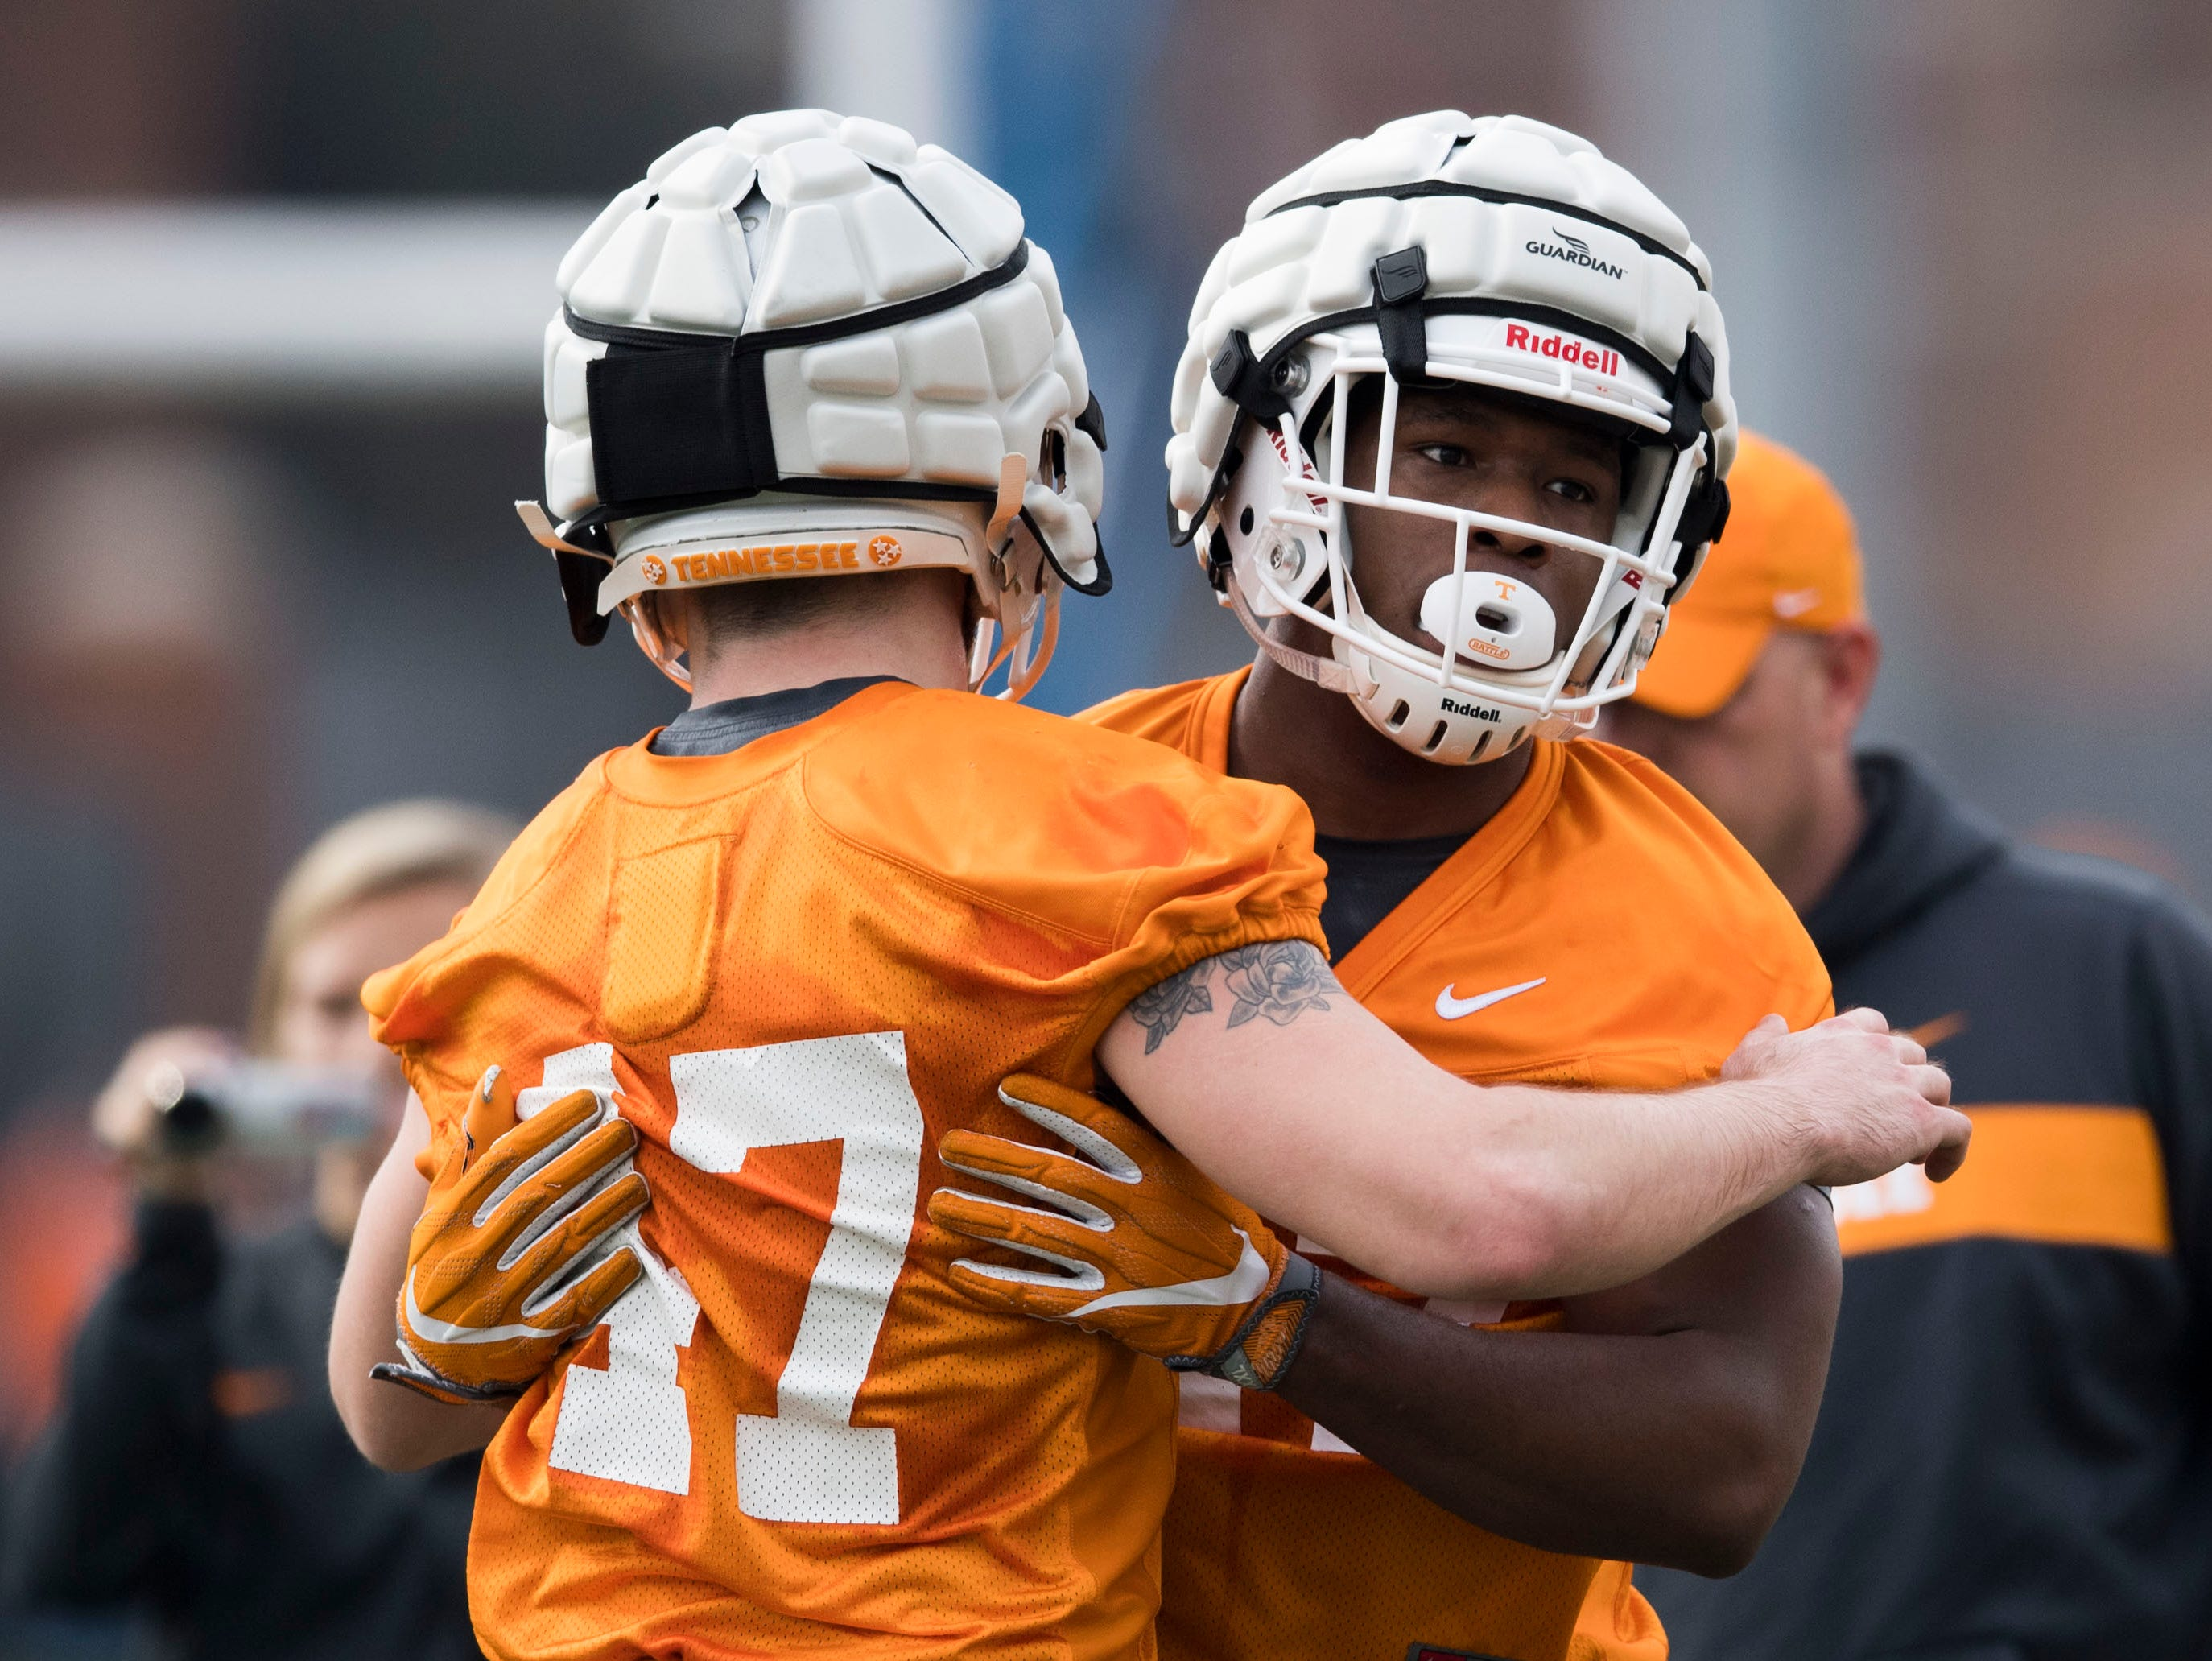 Players participate in a drill during a Tennessee Vols football spring practice Saturday, March 9, 2019.